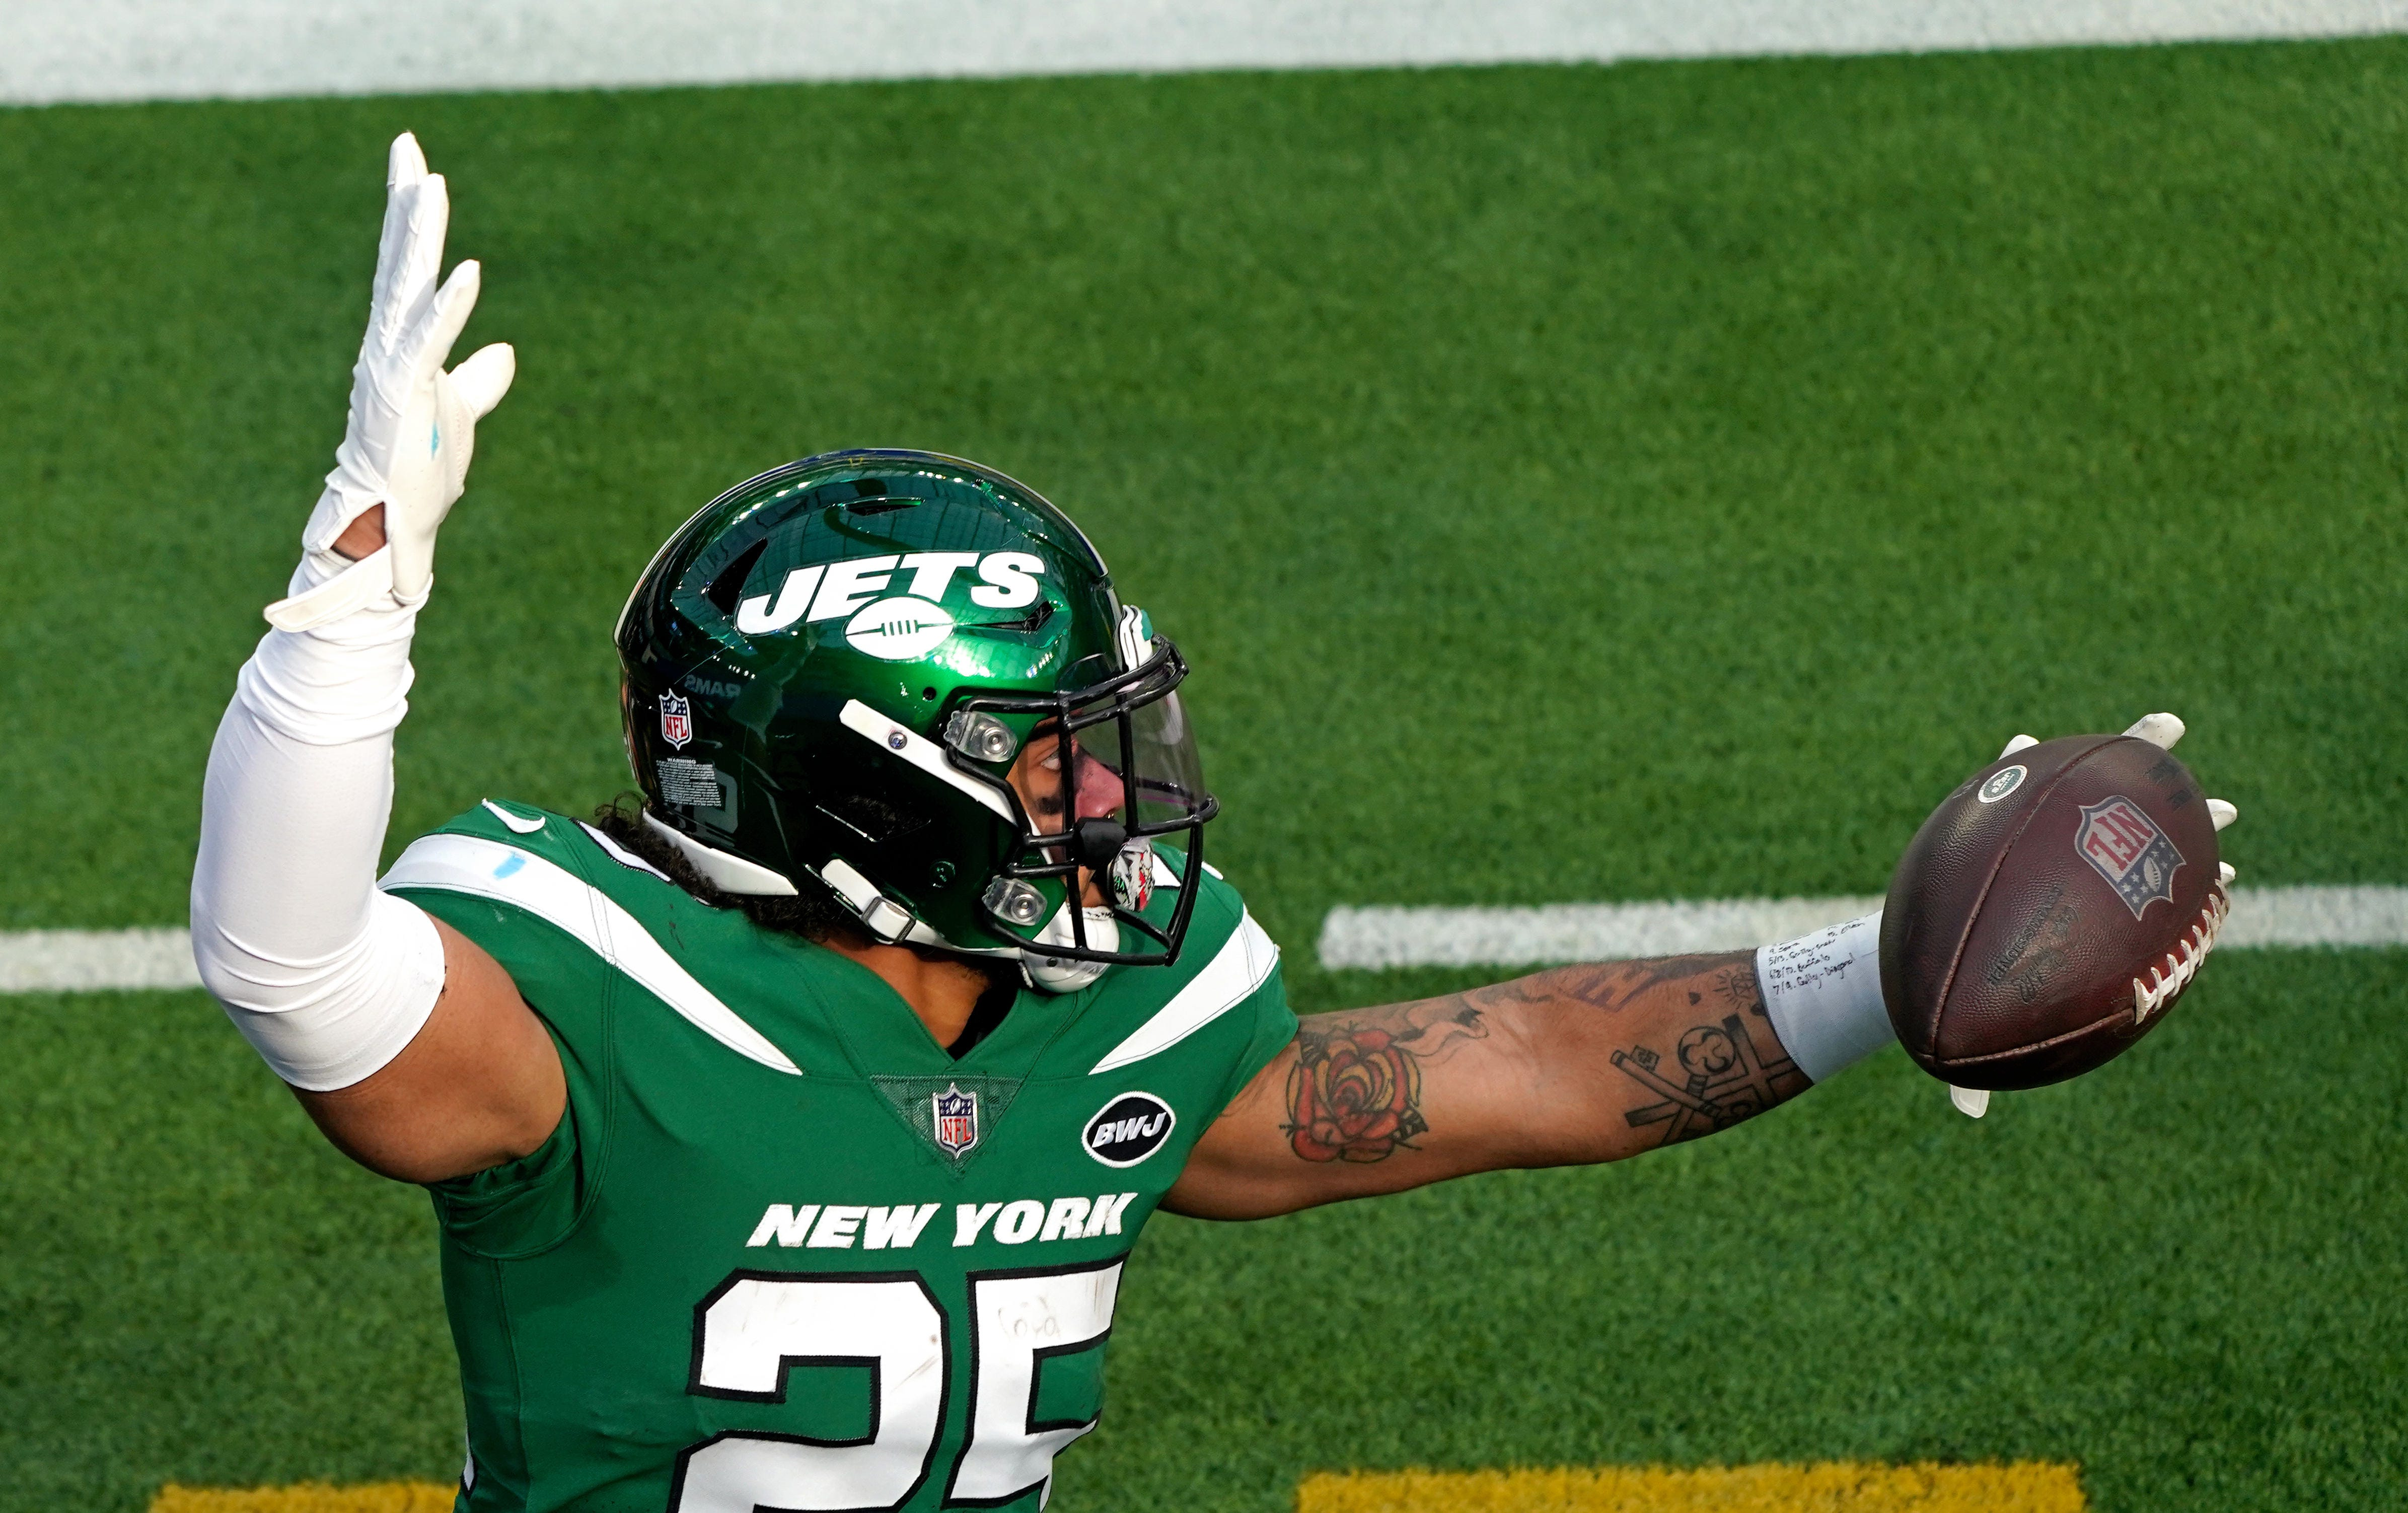 New York Jets pull off shocker, defeat Los Angeles Rams for first win of 2020 season